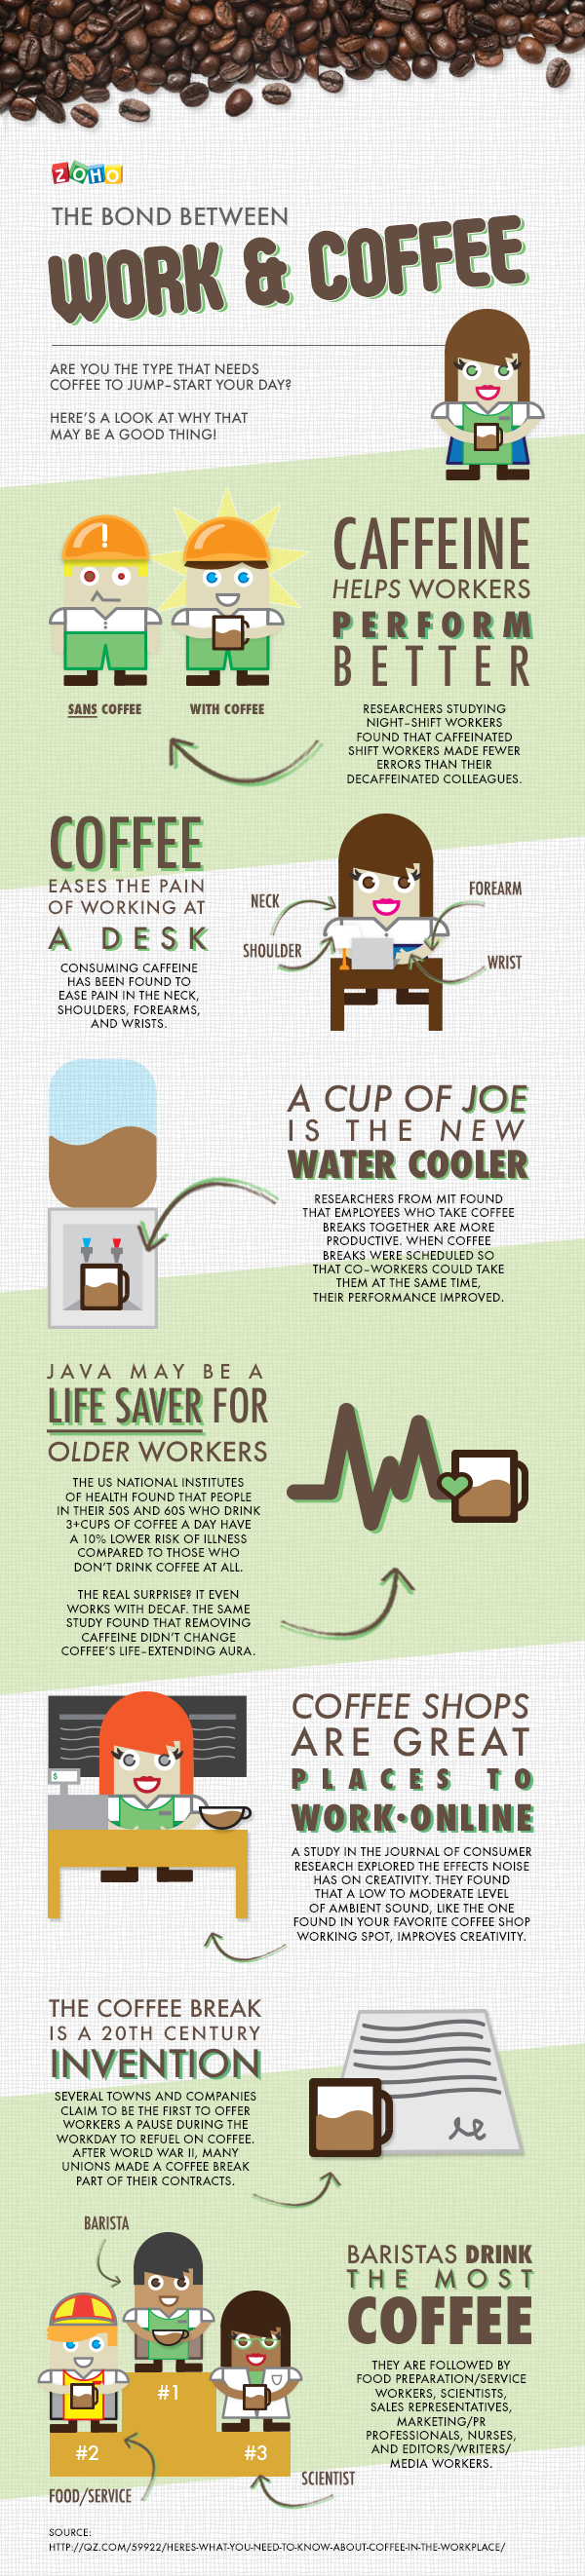 Work and Coffee Infographic